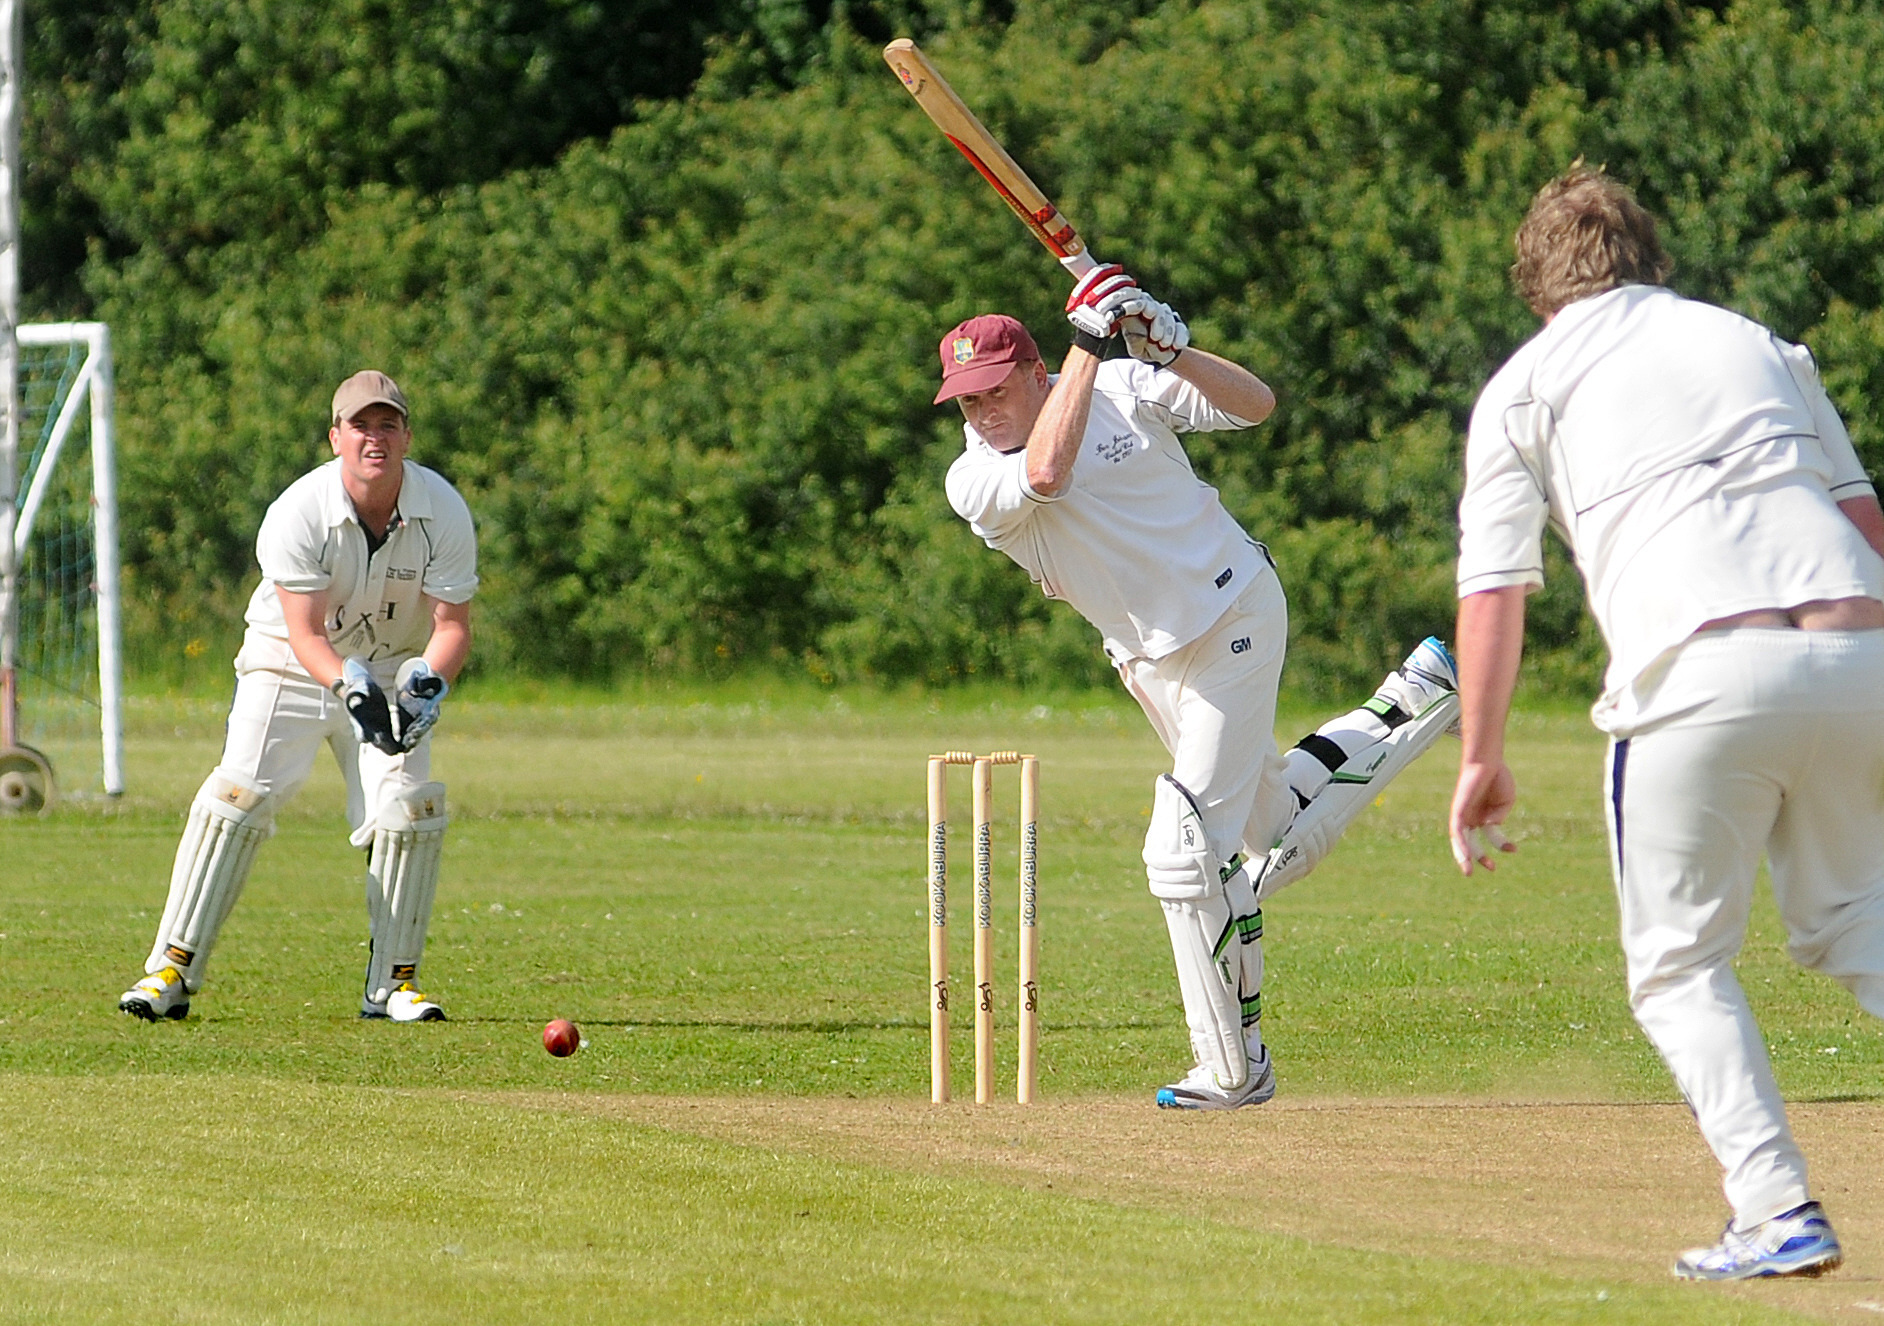 Stockton & Hopgrove CC v Ben Johnson's CC. Pictured is Ben Johnson's batsman Steve Wragg.